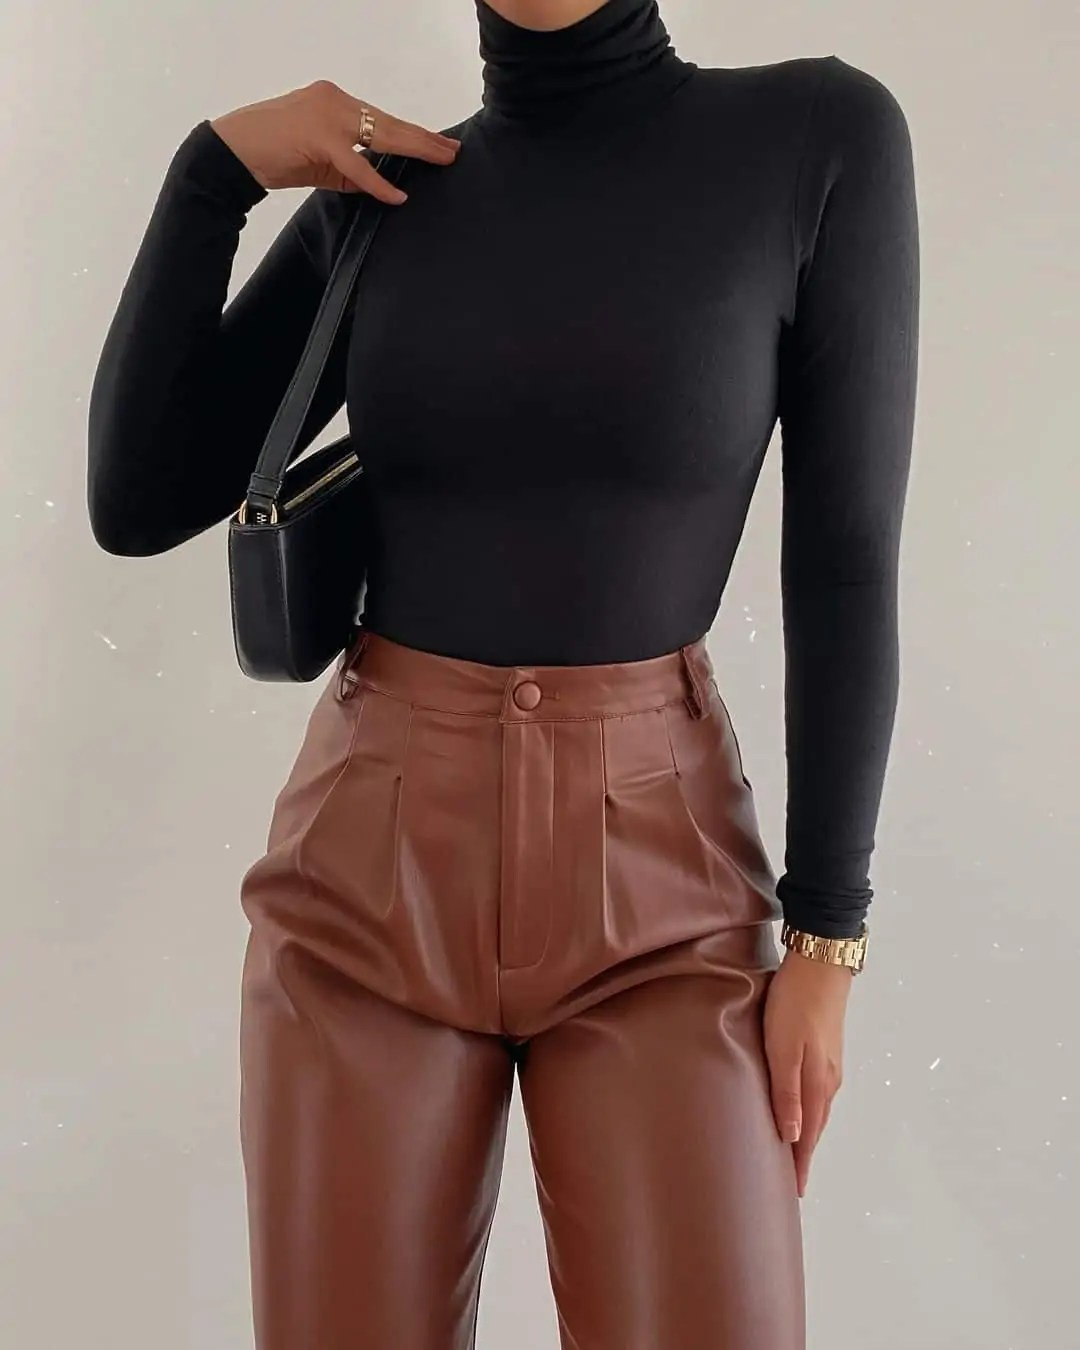 100+ Outfits to Inspire your next shopping haul 215